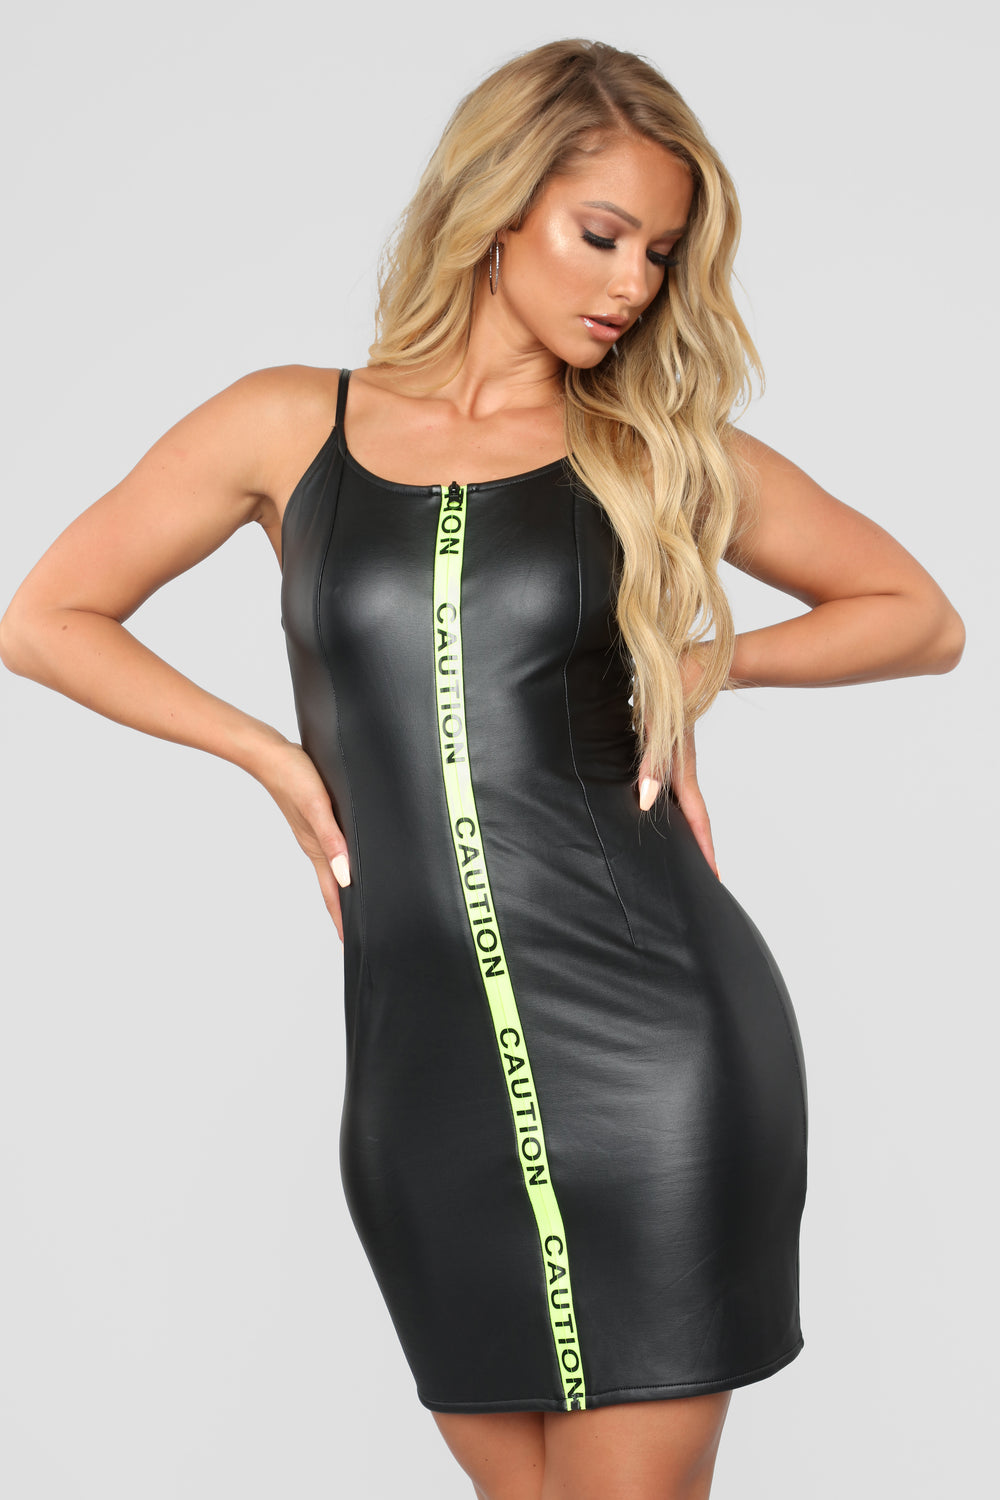 Handle With Care Mini Dress - Black